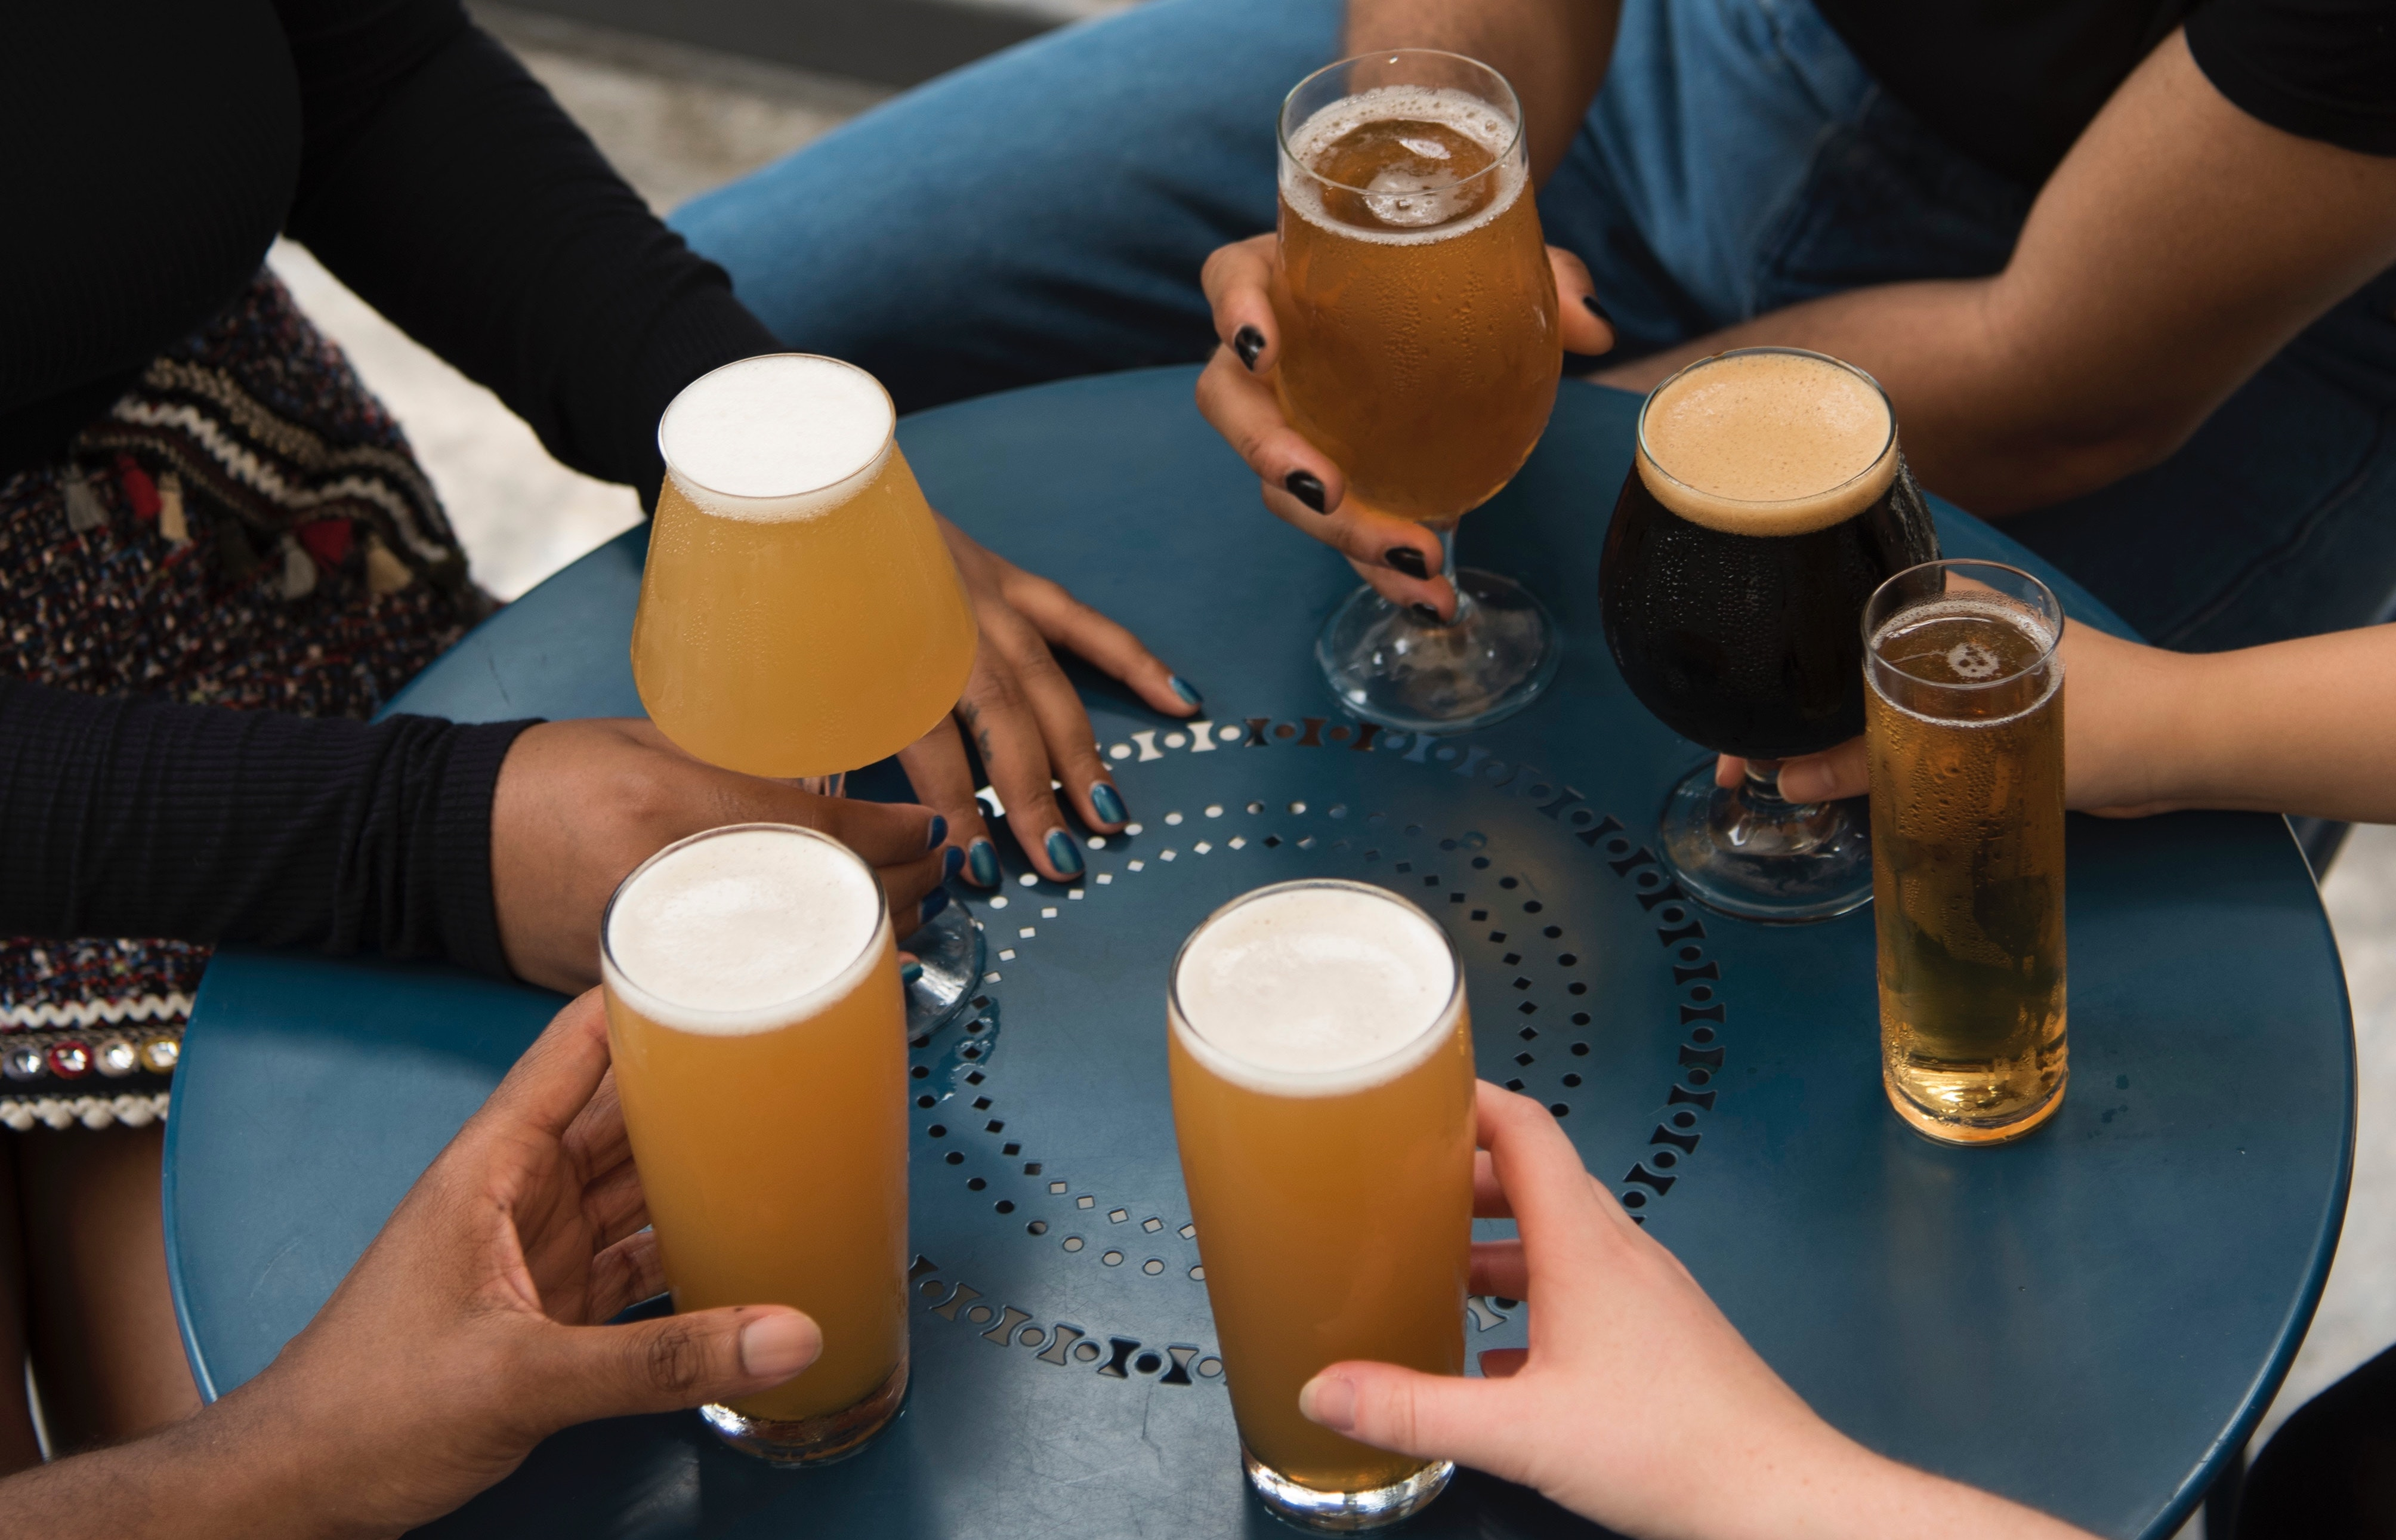 Several people's hands holding beer glasses in a circle on a small table.